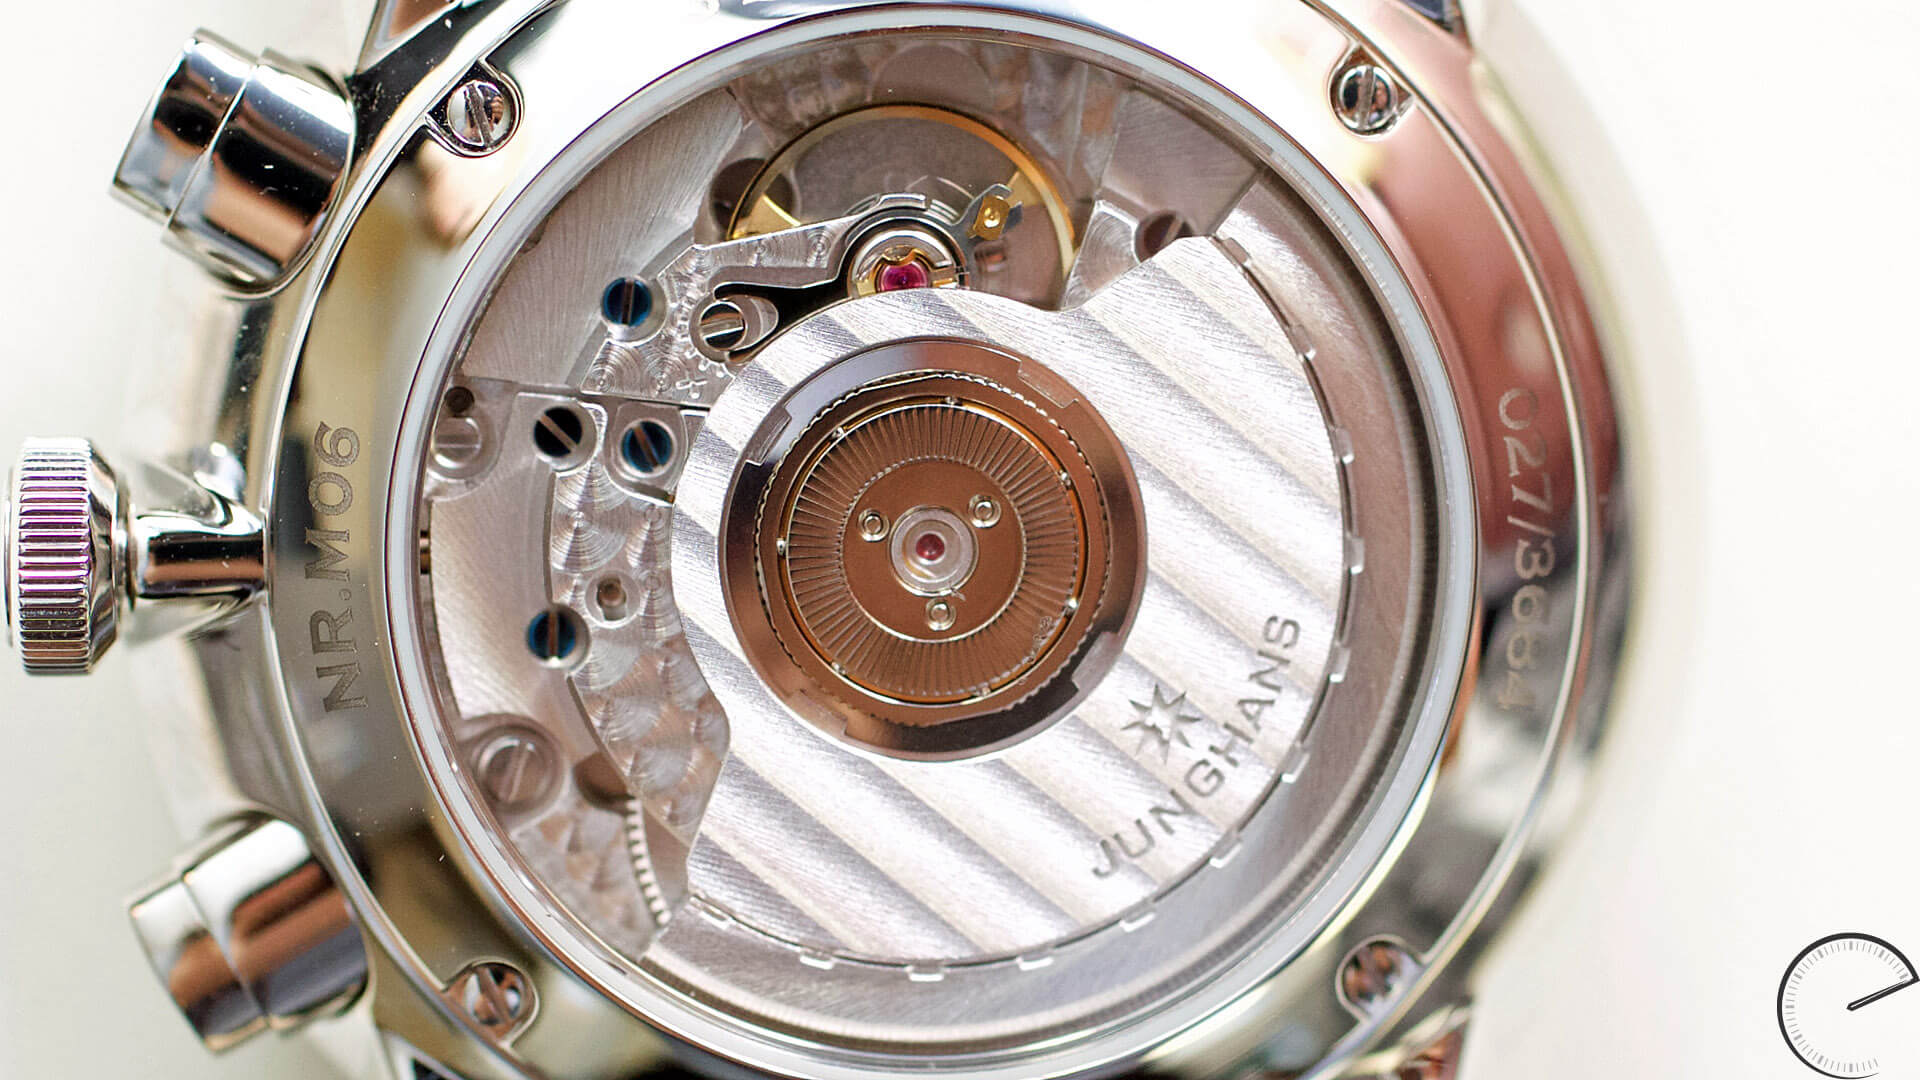 Junghans_Meister_Driver_Chronoscope_calibre_J880.3 - ESCAPEMENT magazine - watch blog by Angus Davies